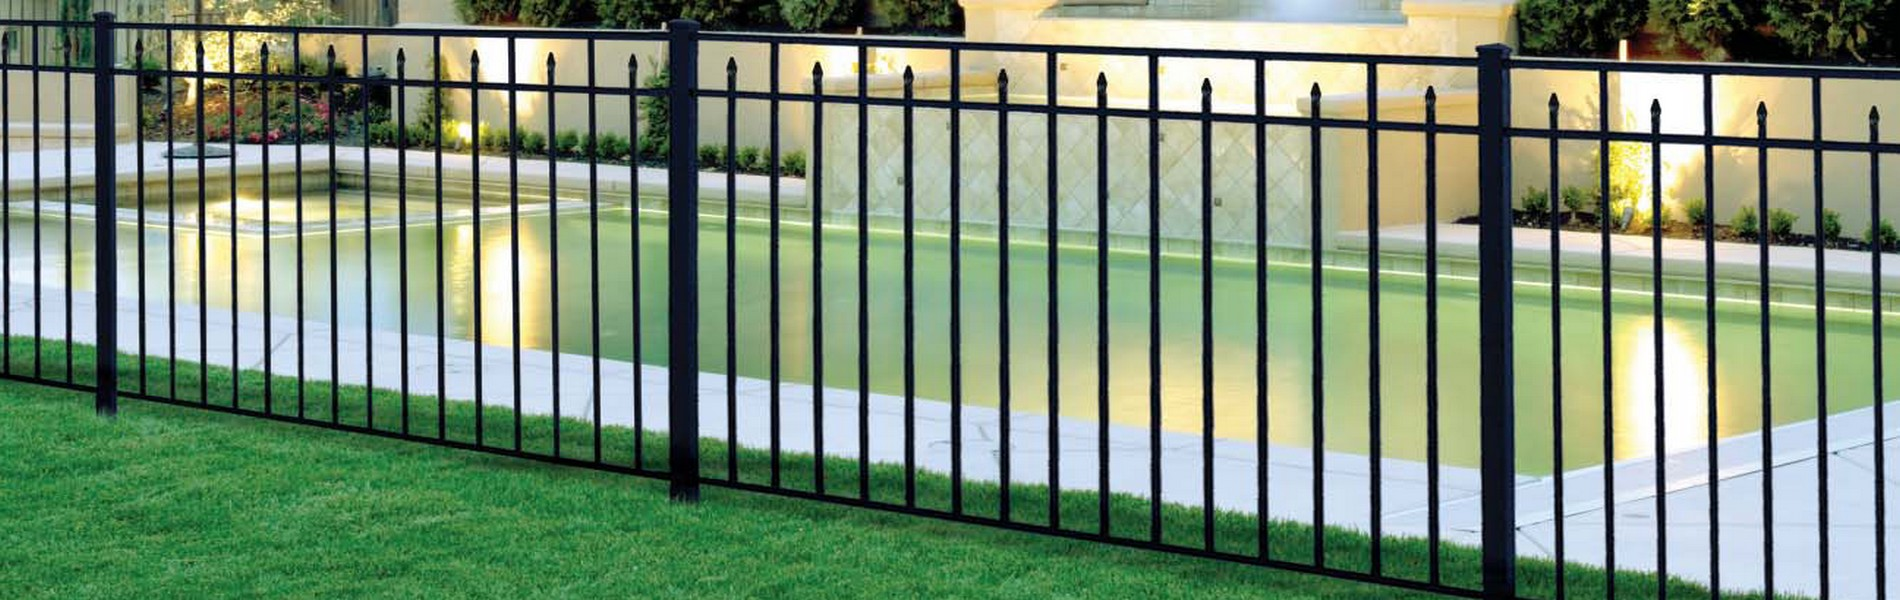 Cedar Springs Fence Ornamental Iron Fencing